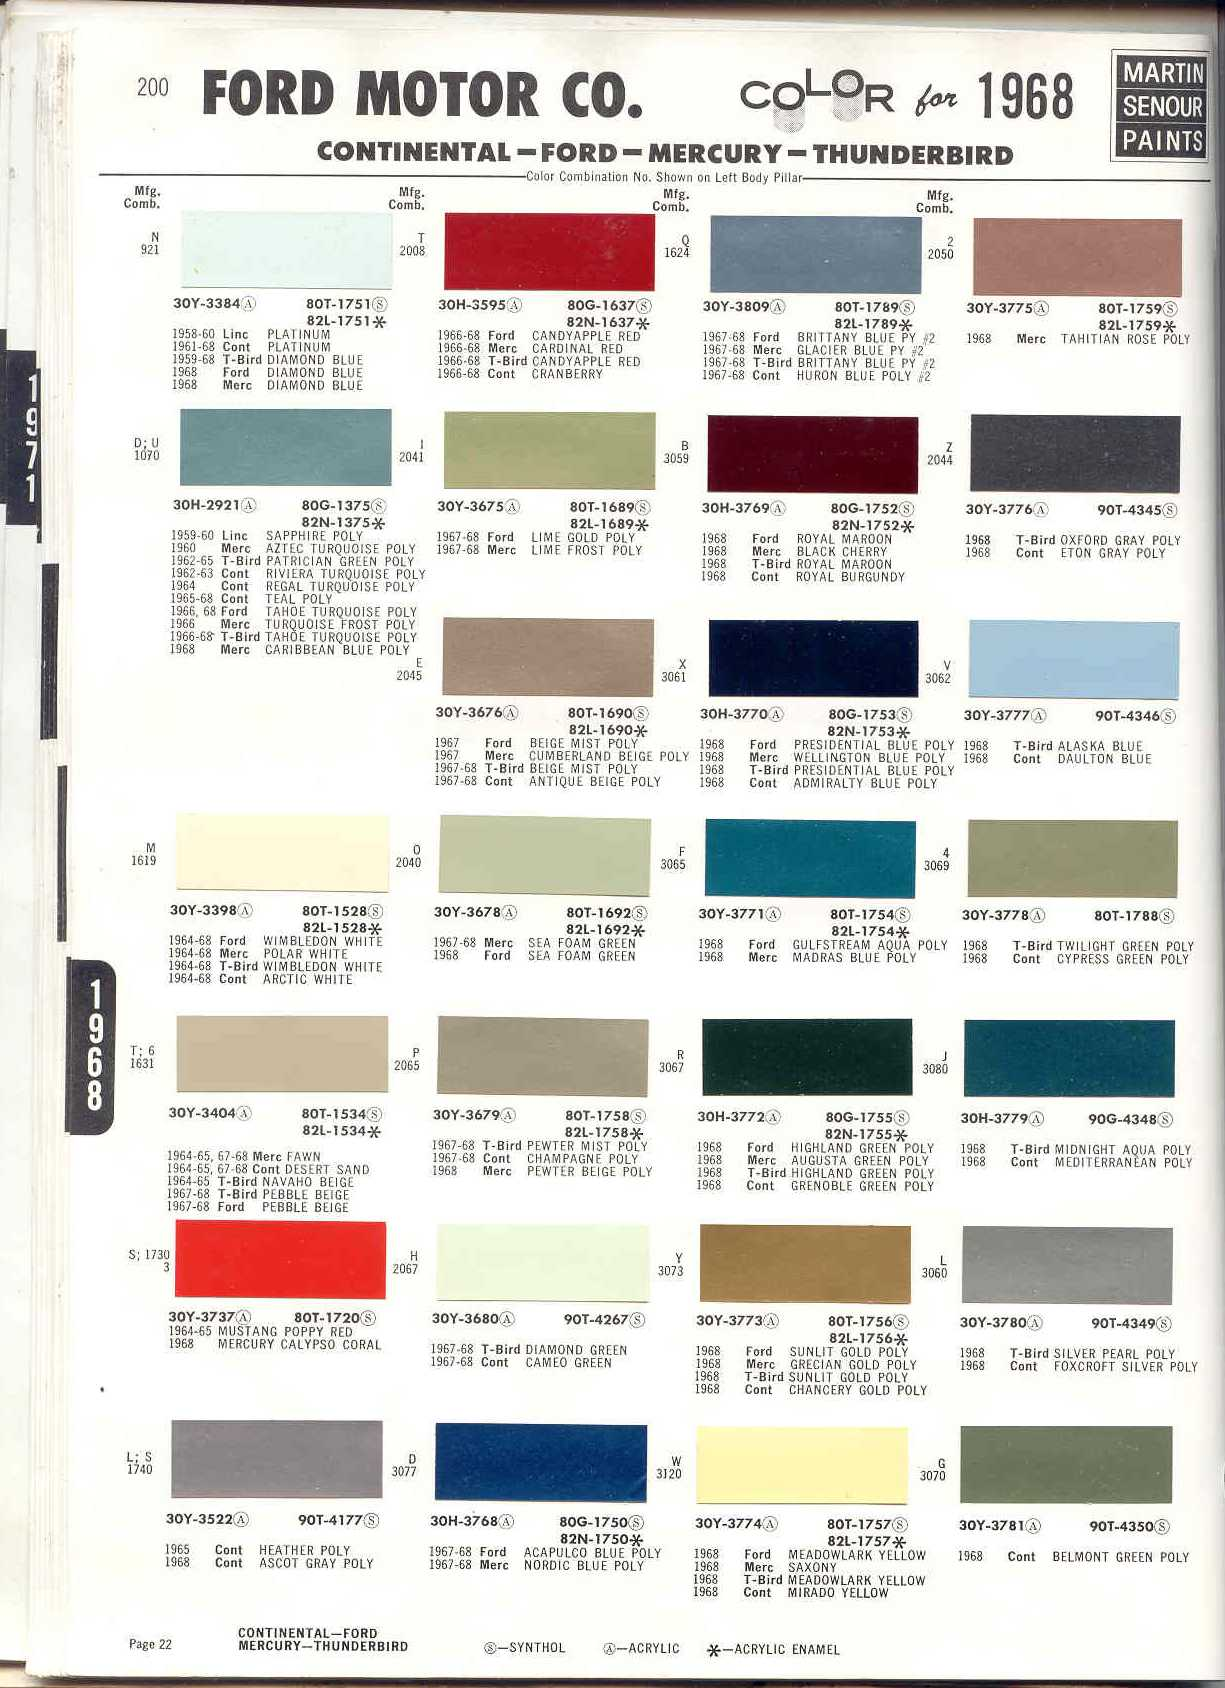 Torino paint colors nvjuhfo Choice Image